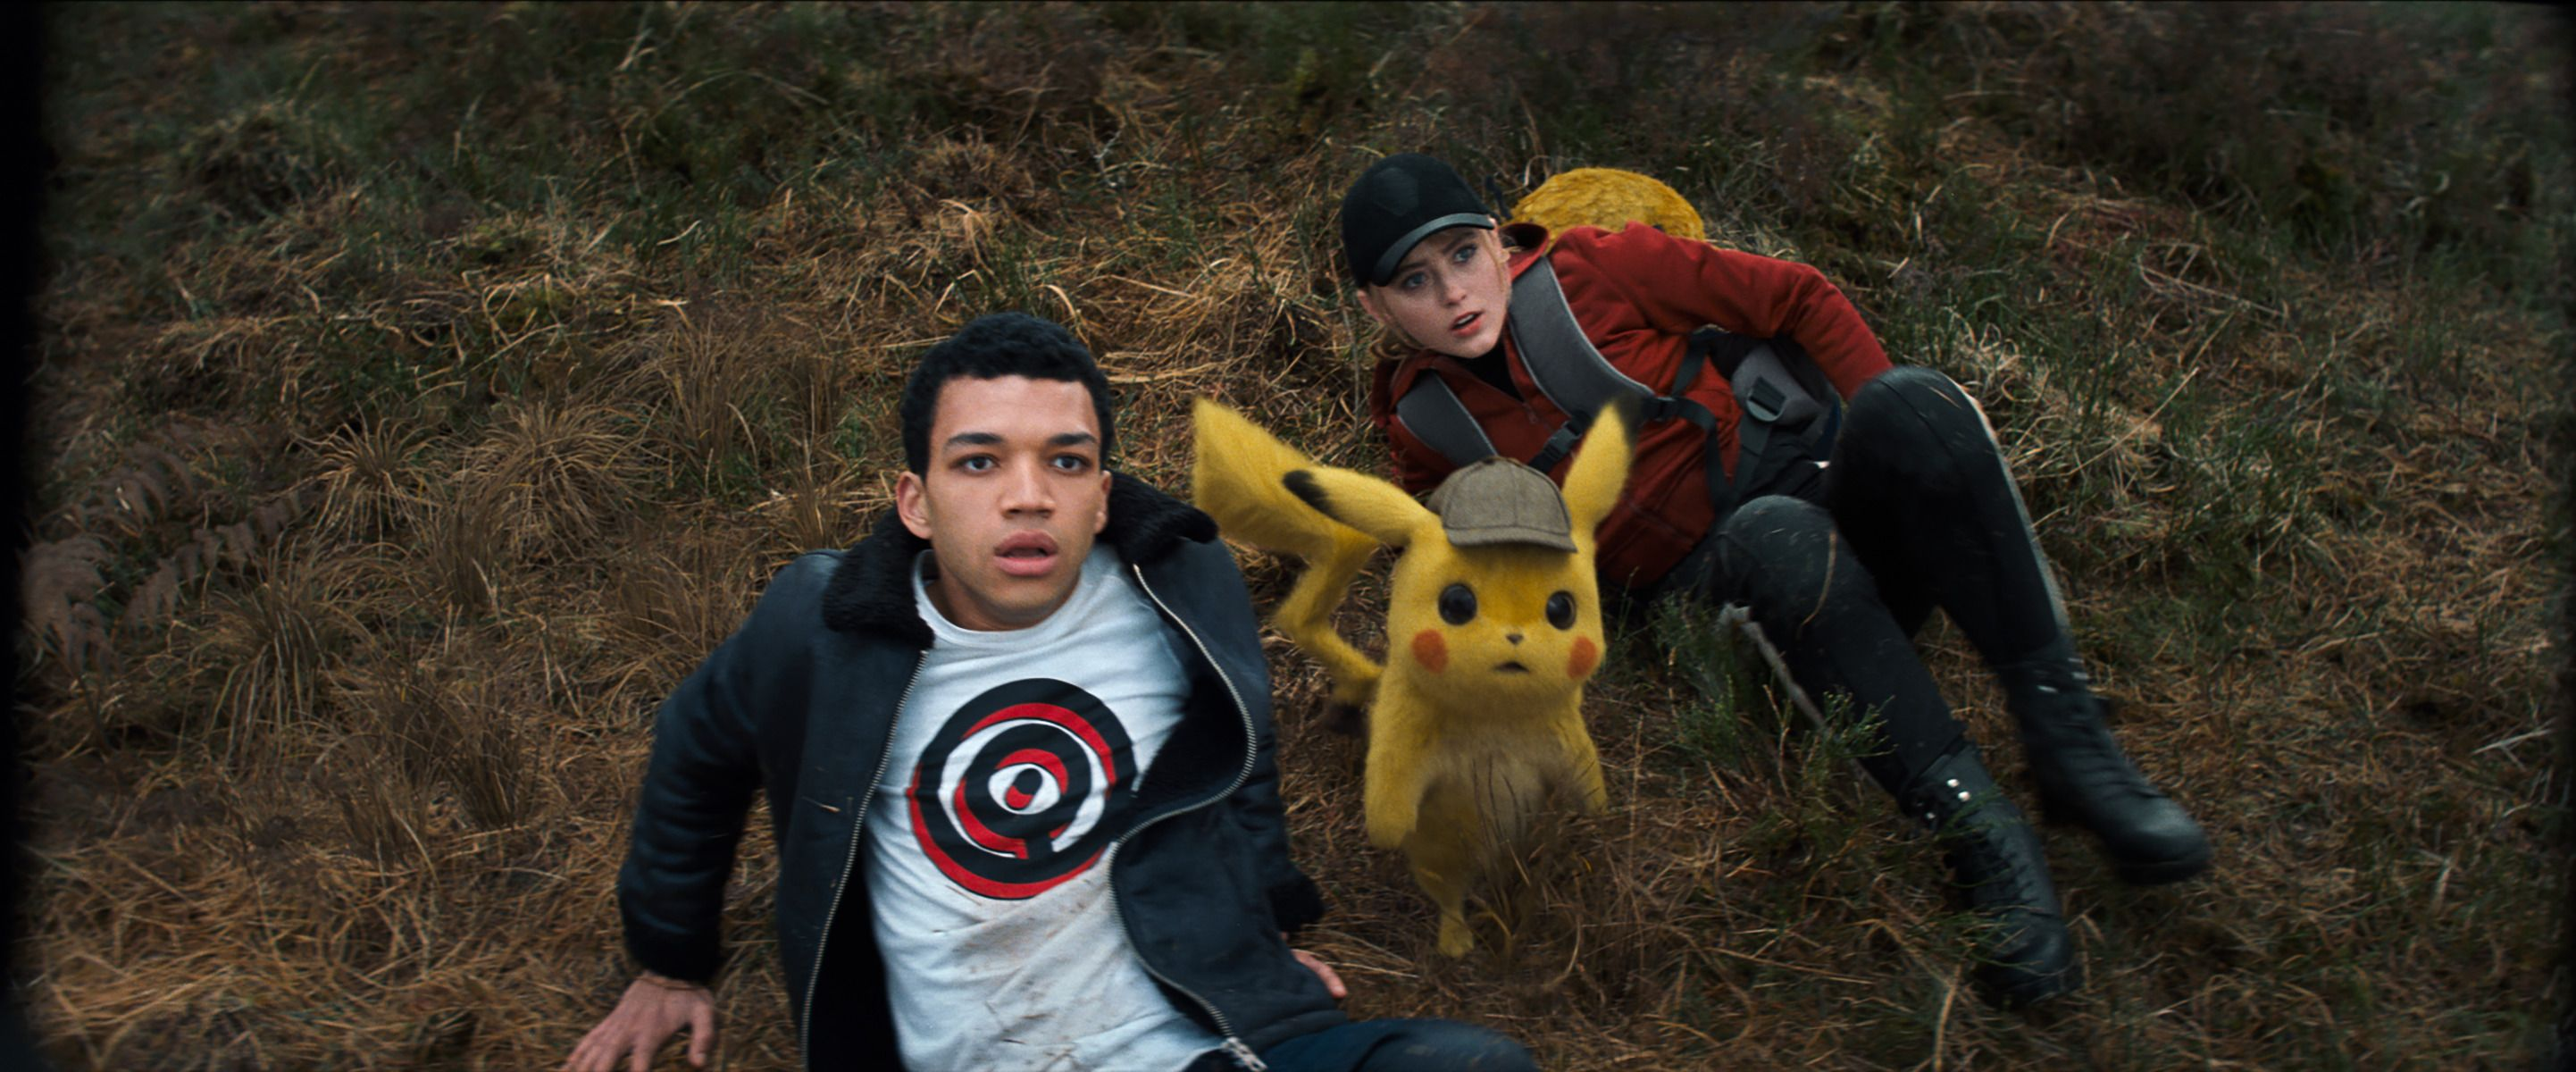 Image result for pokemon detective pikachu cast